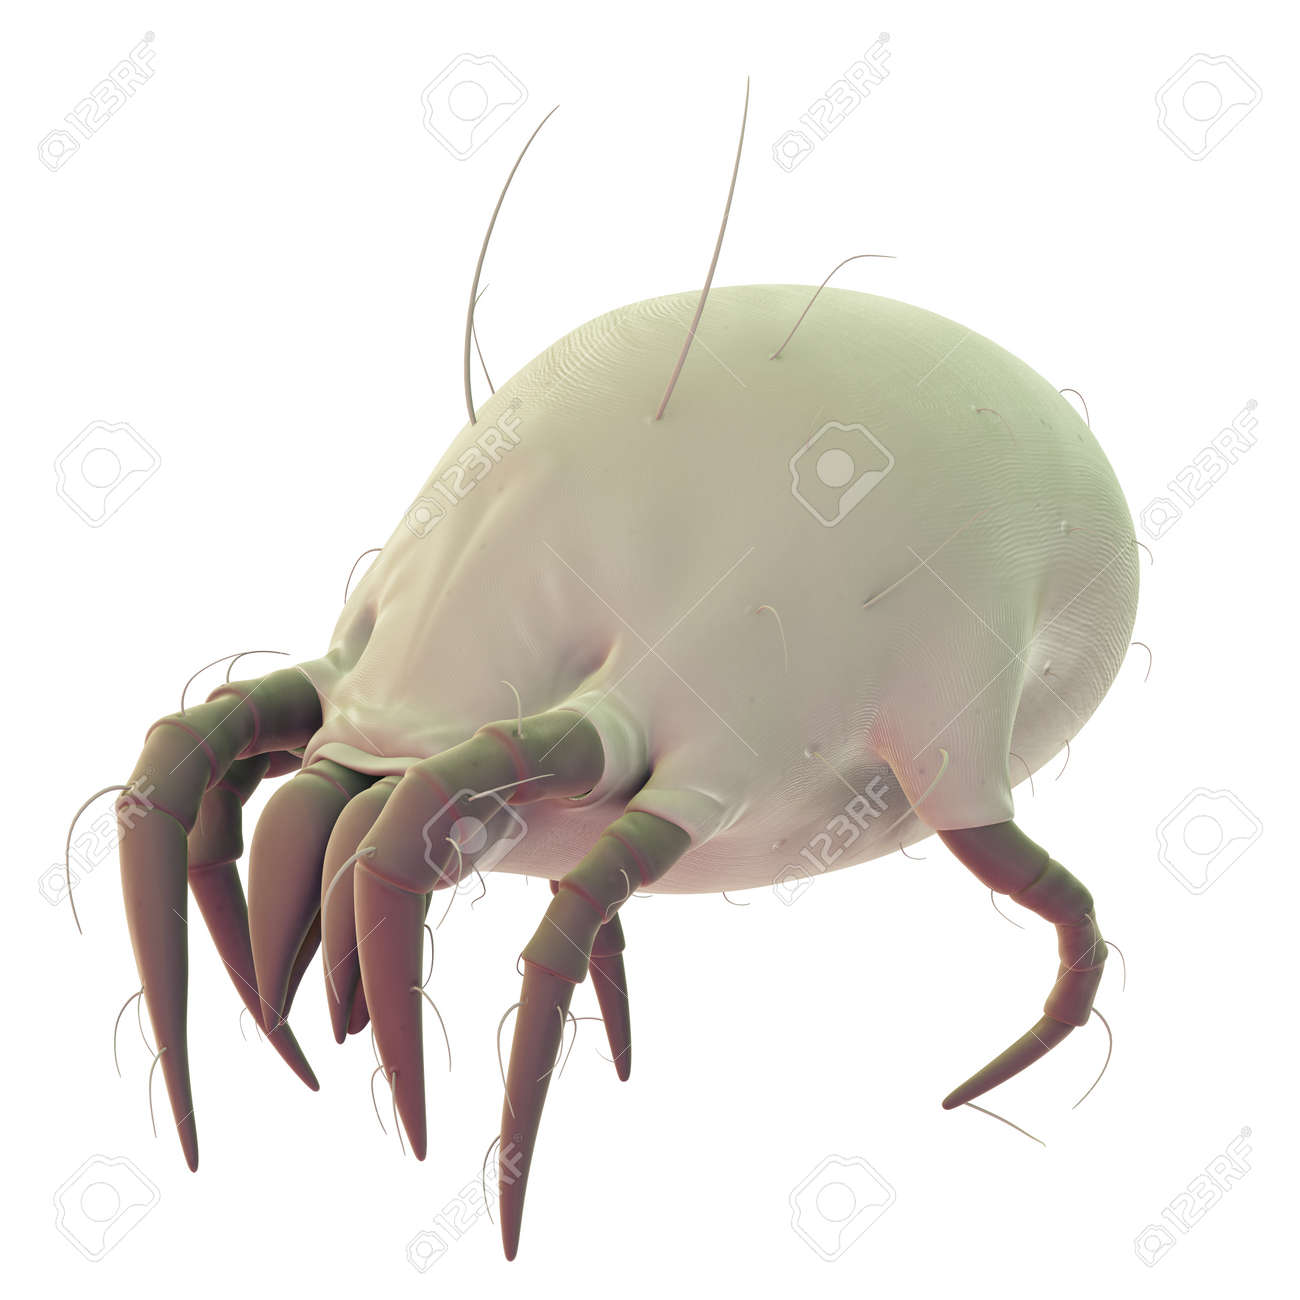 medically accurate illustration of a common dust mite - 45345960